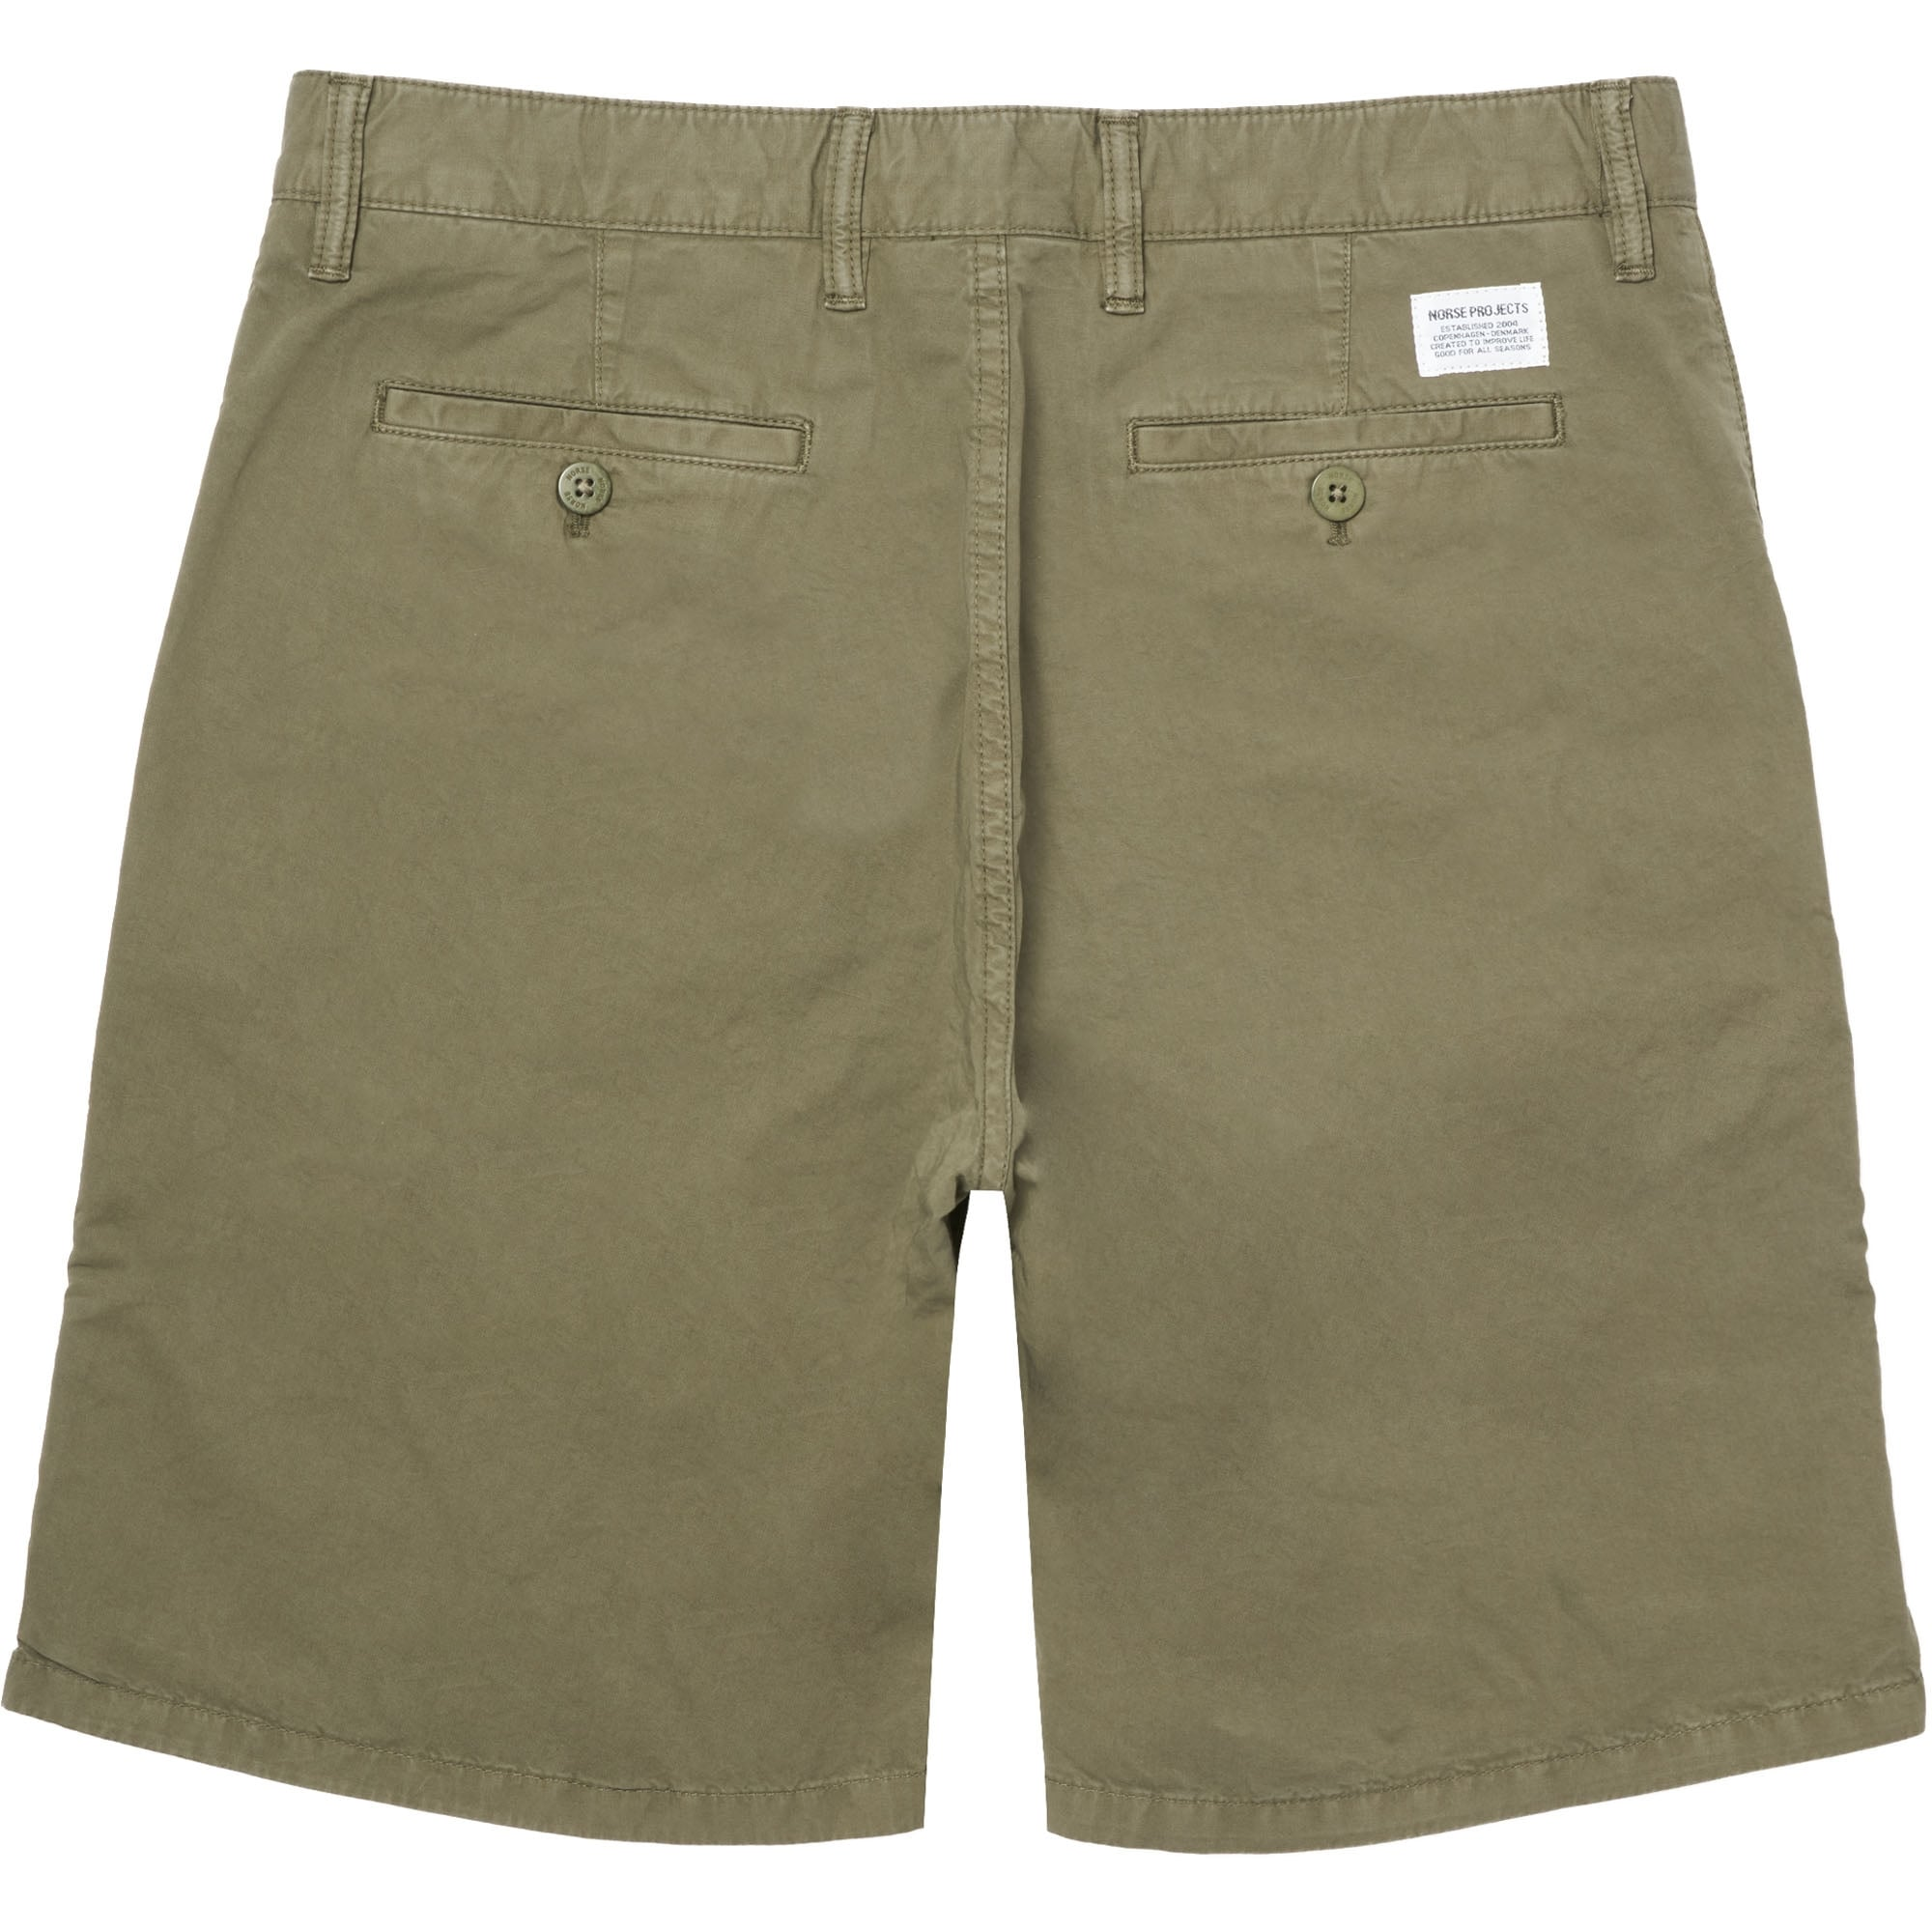 dd226c74434 Norse Projects Olive Aros Twill Shorts N35-0237 | Dandy Fellow